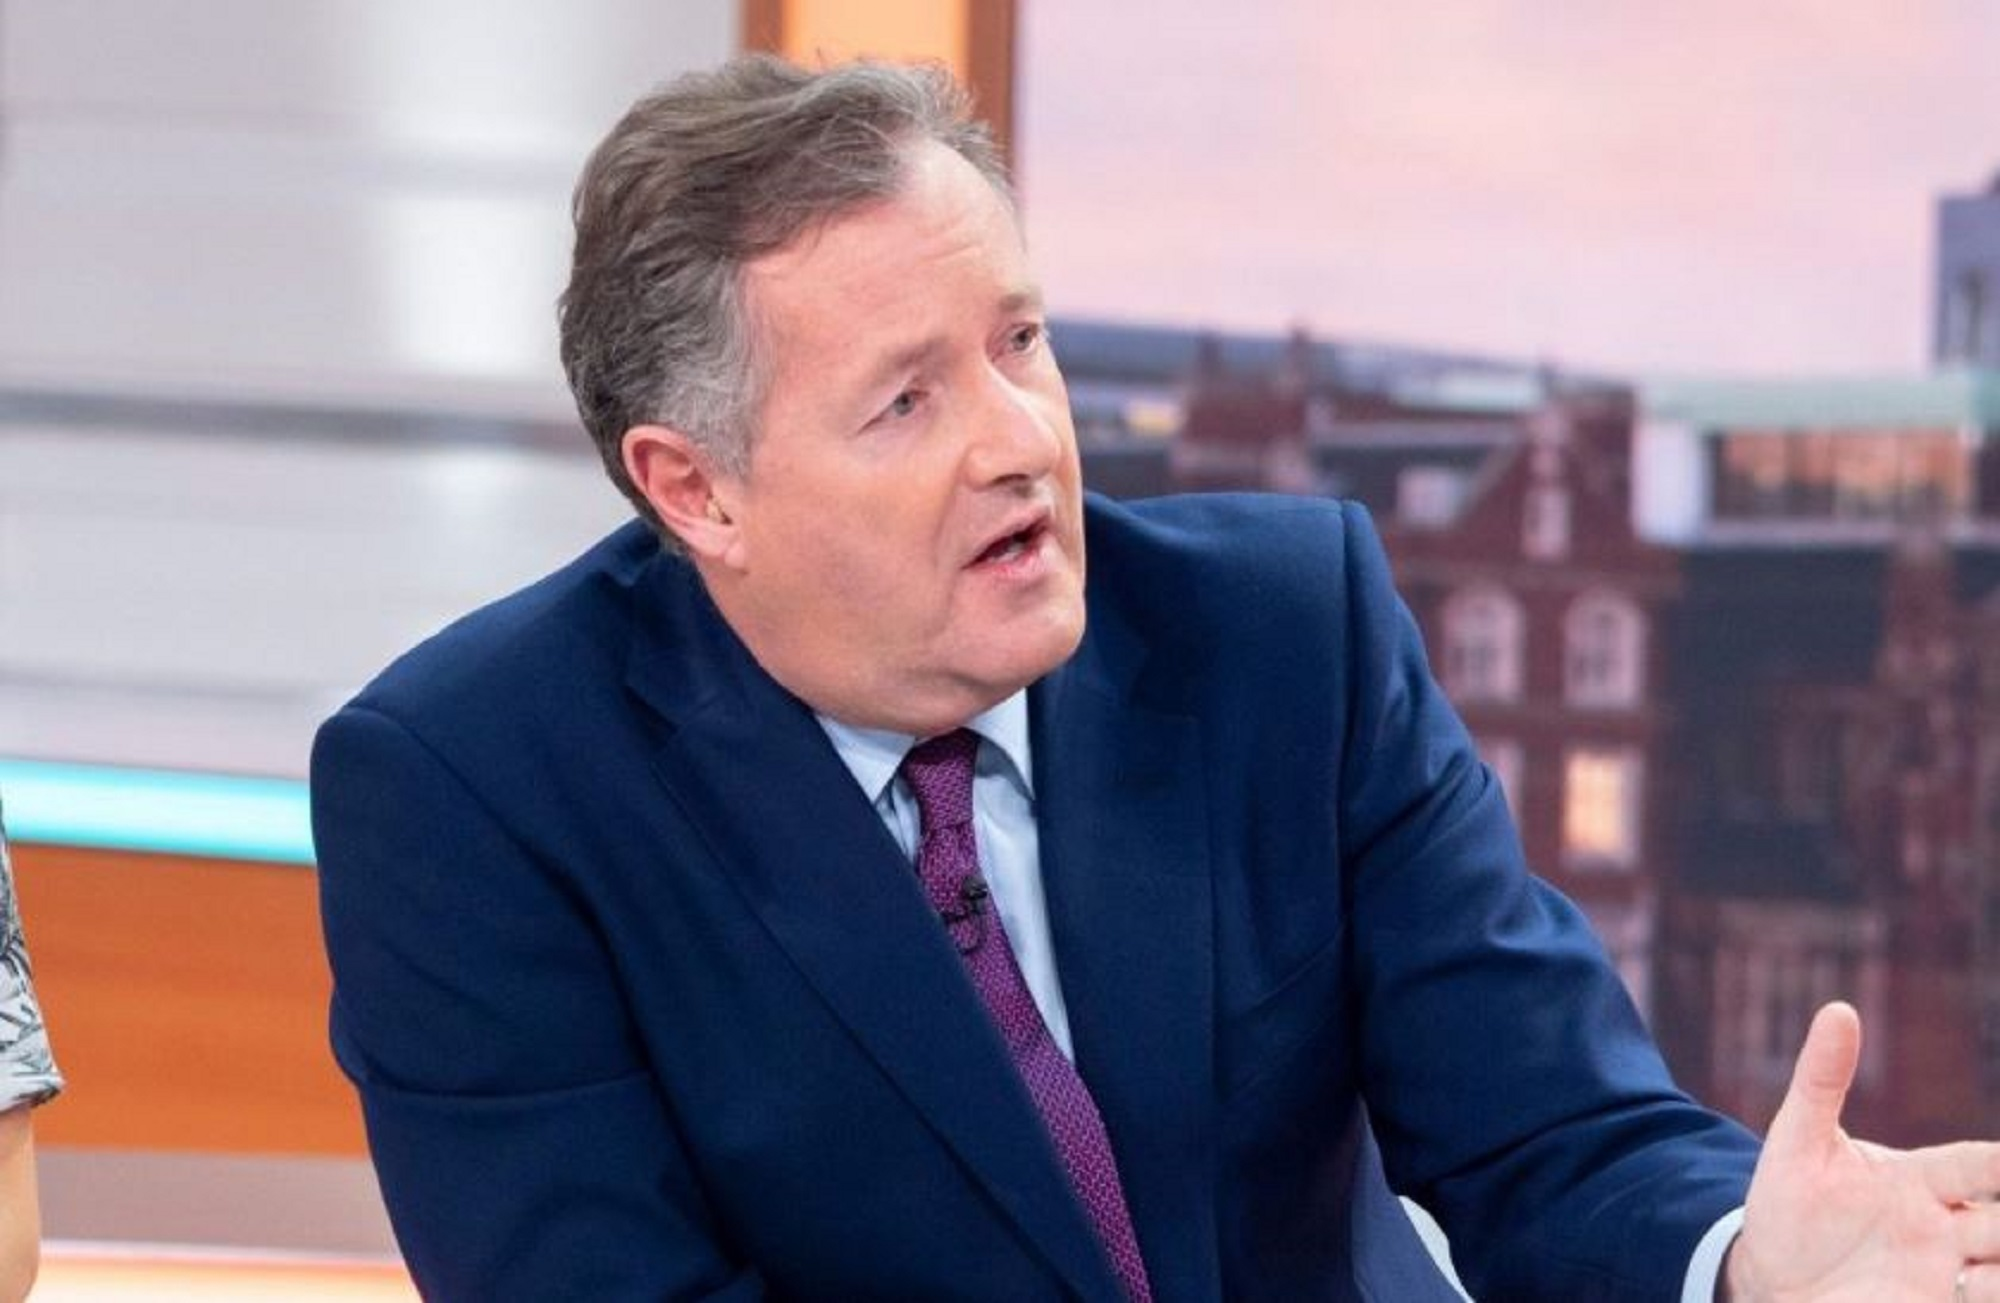 Piers Morgan defends 'excruciating' interview with Care minister Helen Whately on GMB